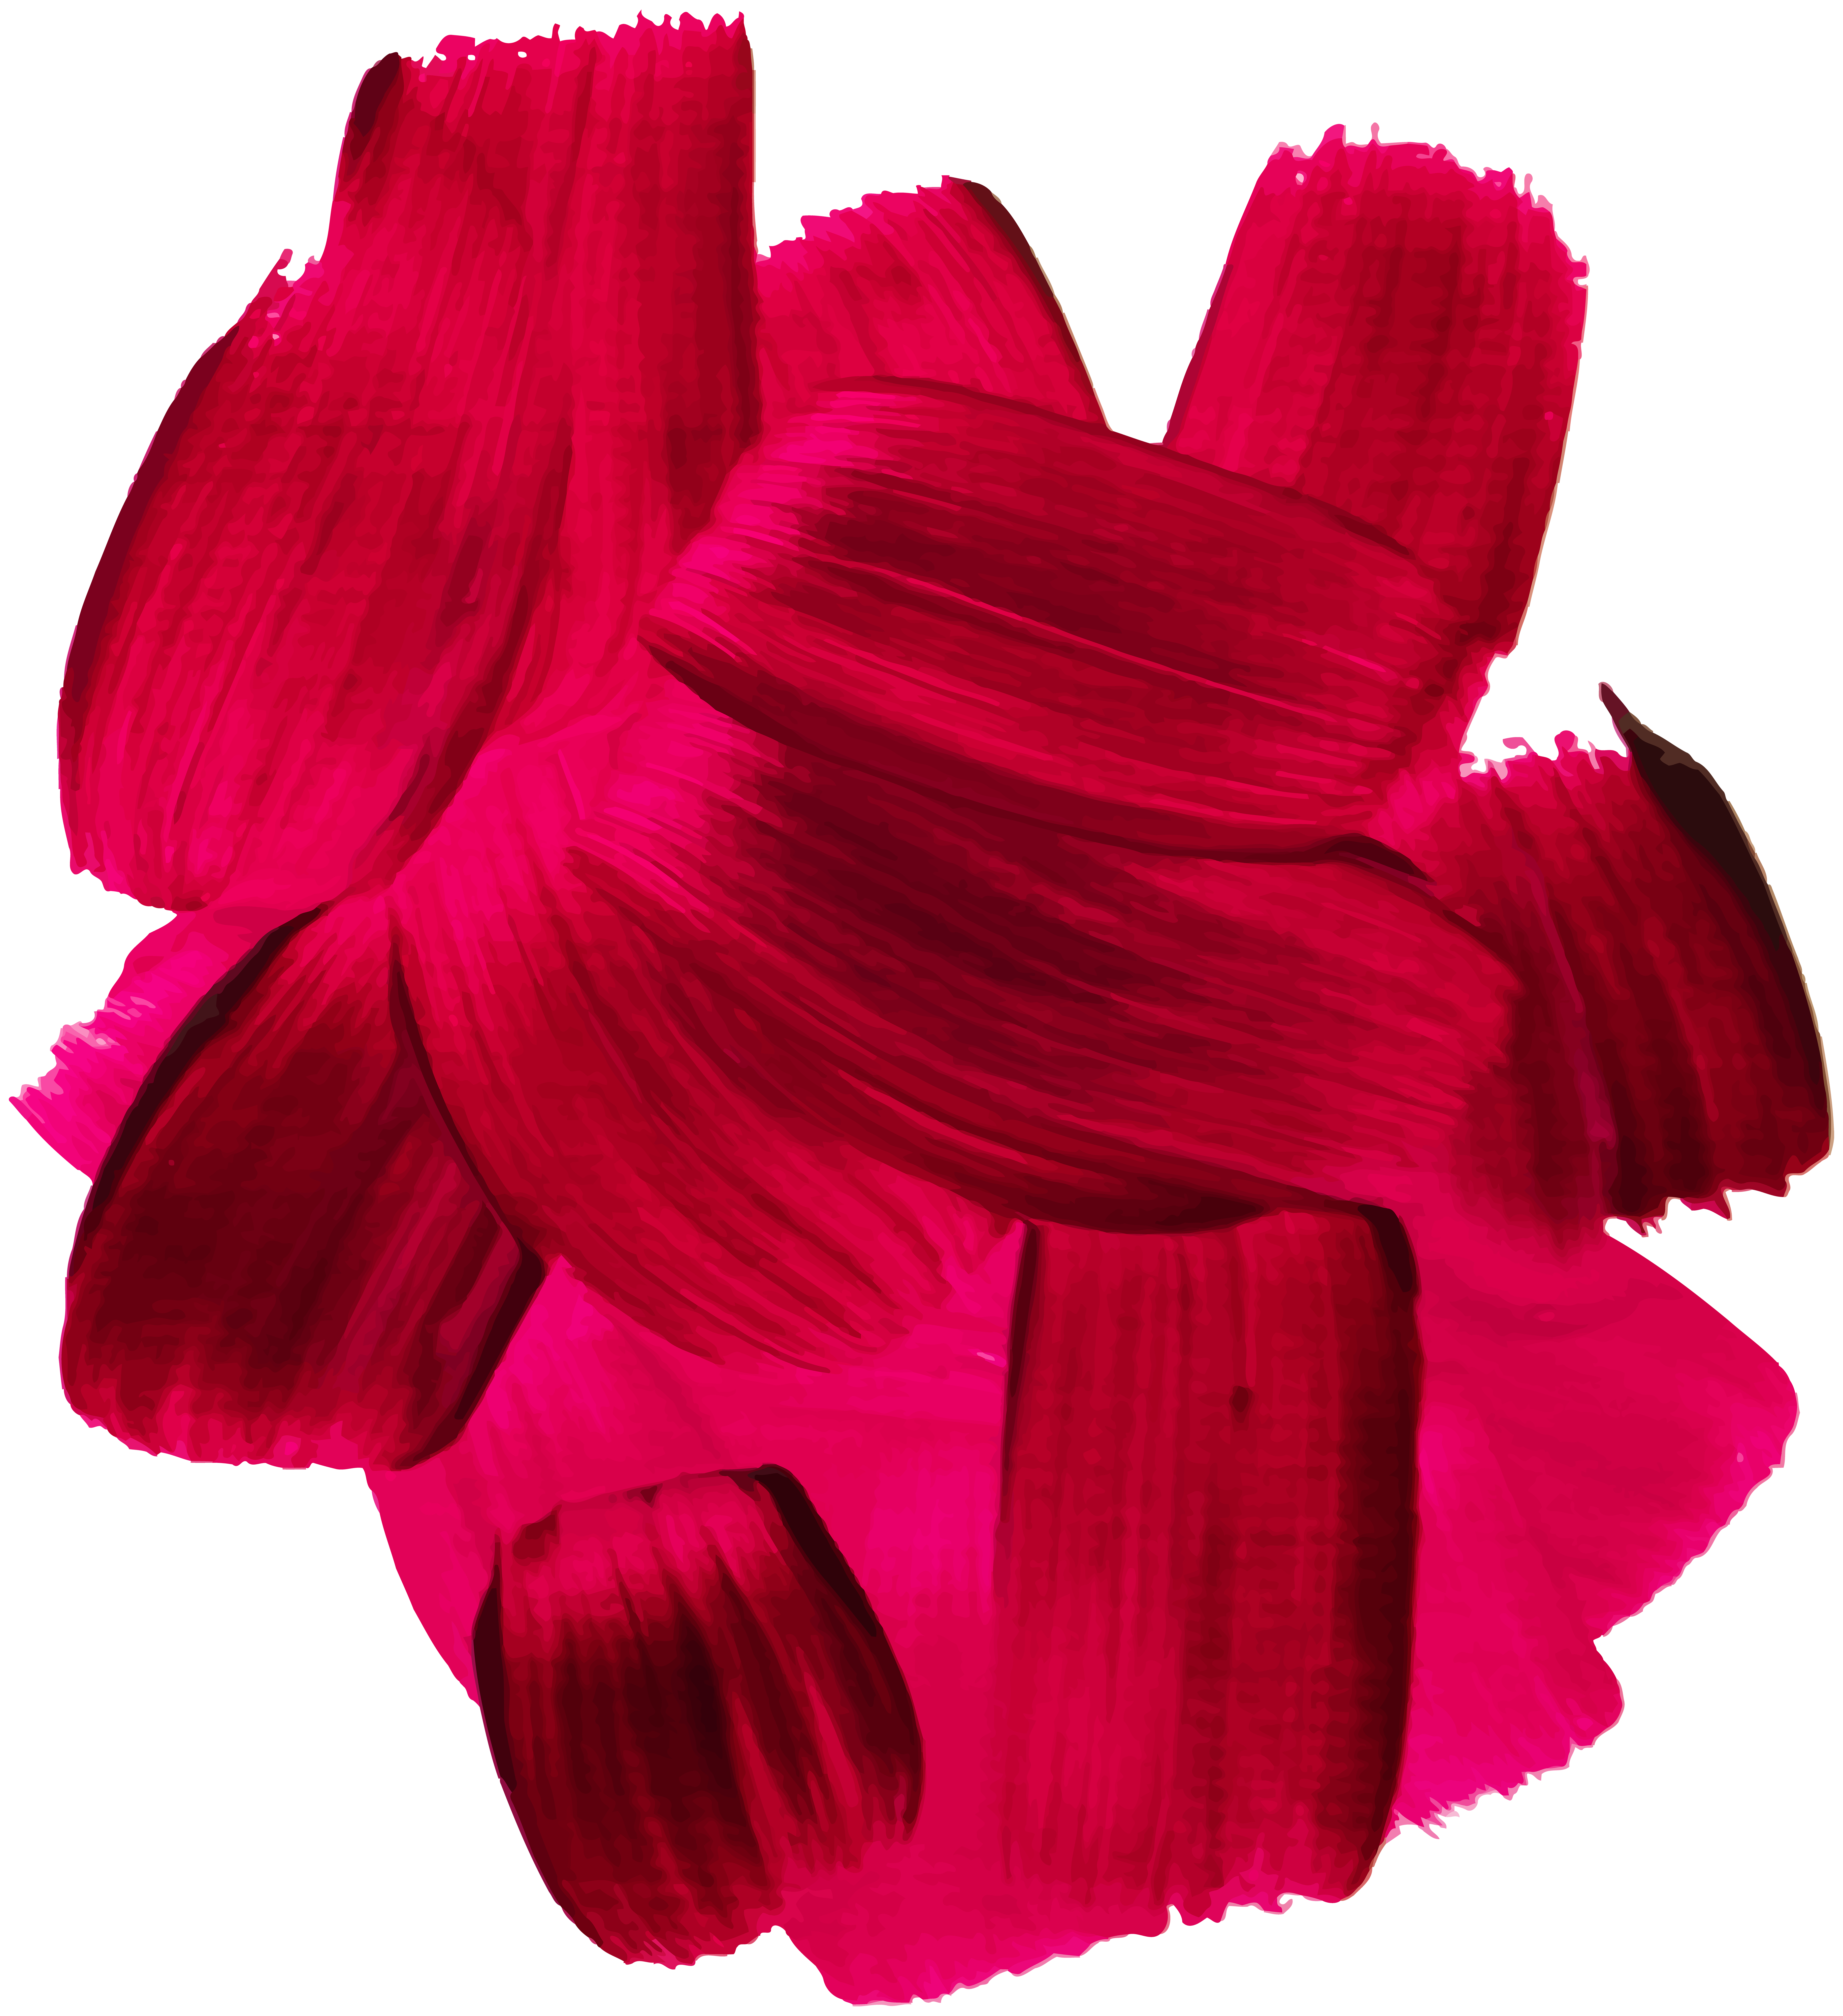 Red paint png. Oil clip art image